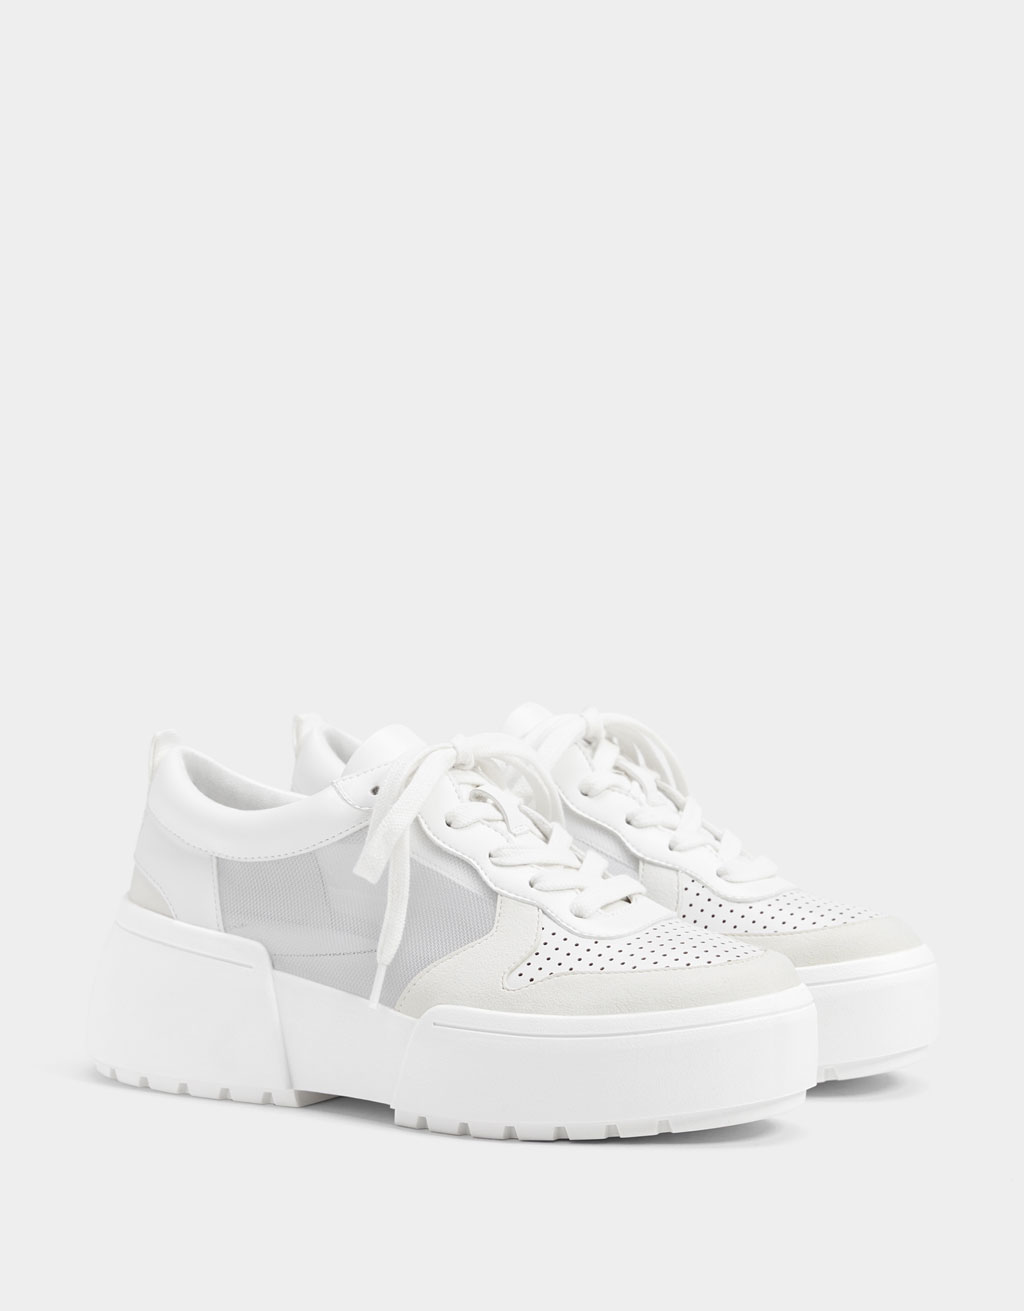 d5a62c90341f Shoes - COLLECTION - WOMEN - Bershka United States